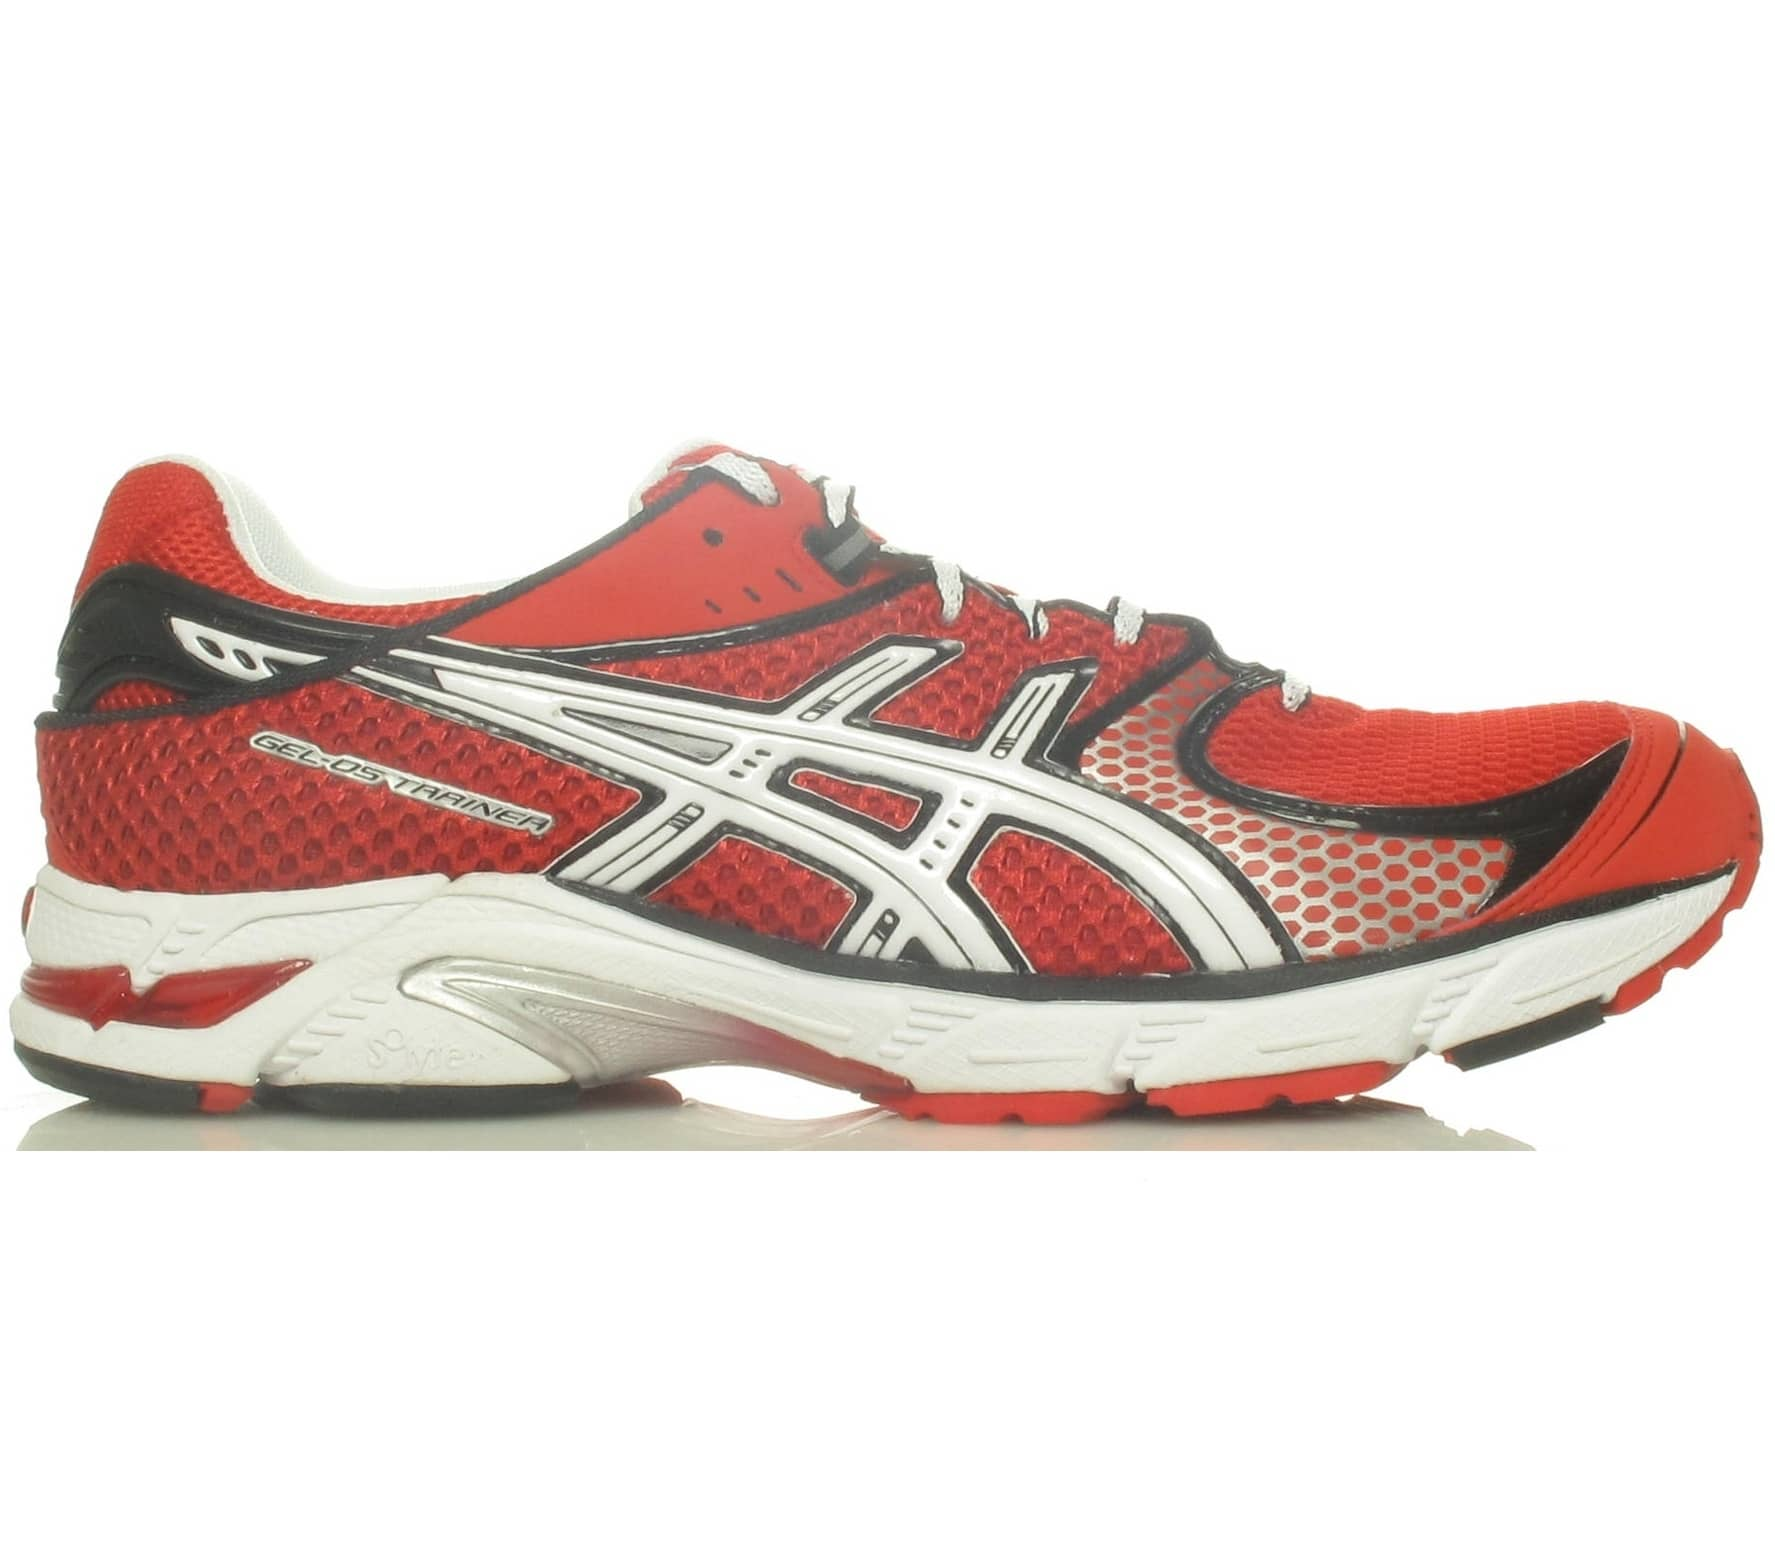 sports shoes 9a506 1663c ASICS Gel-DS Trainer 16 red Running Shoes Men